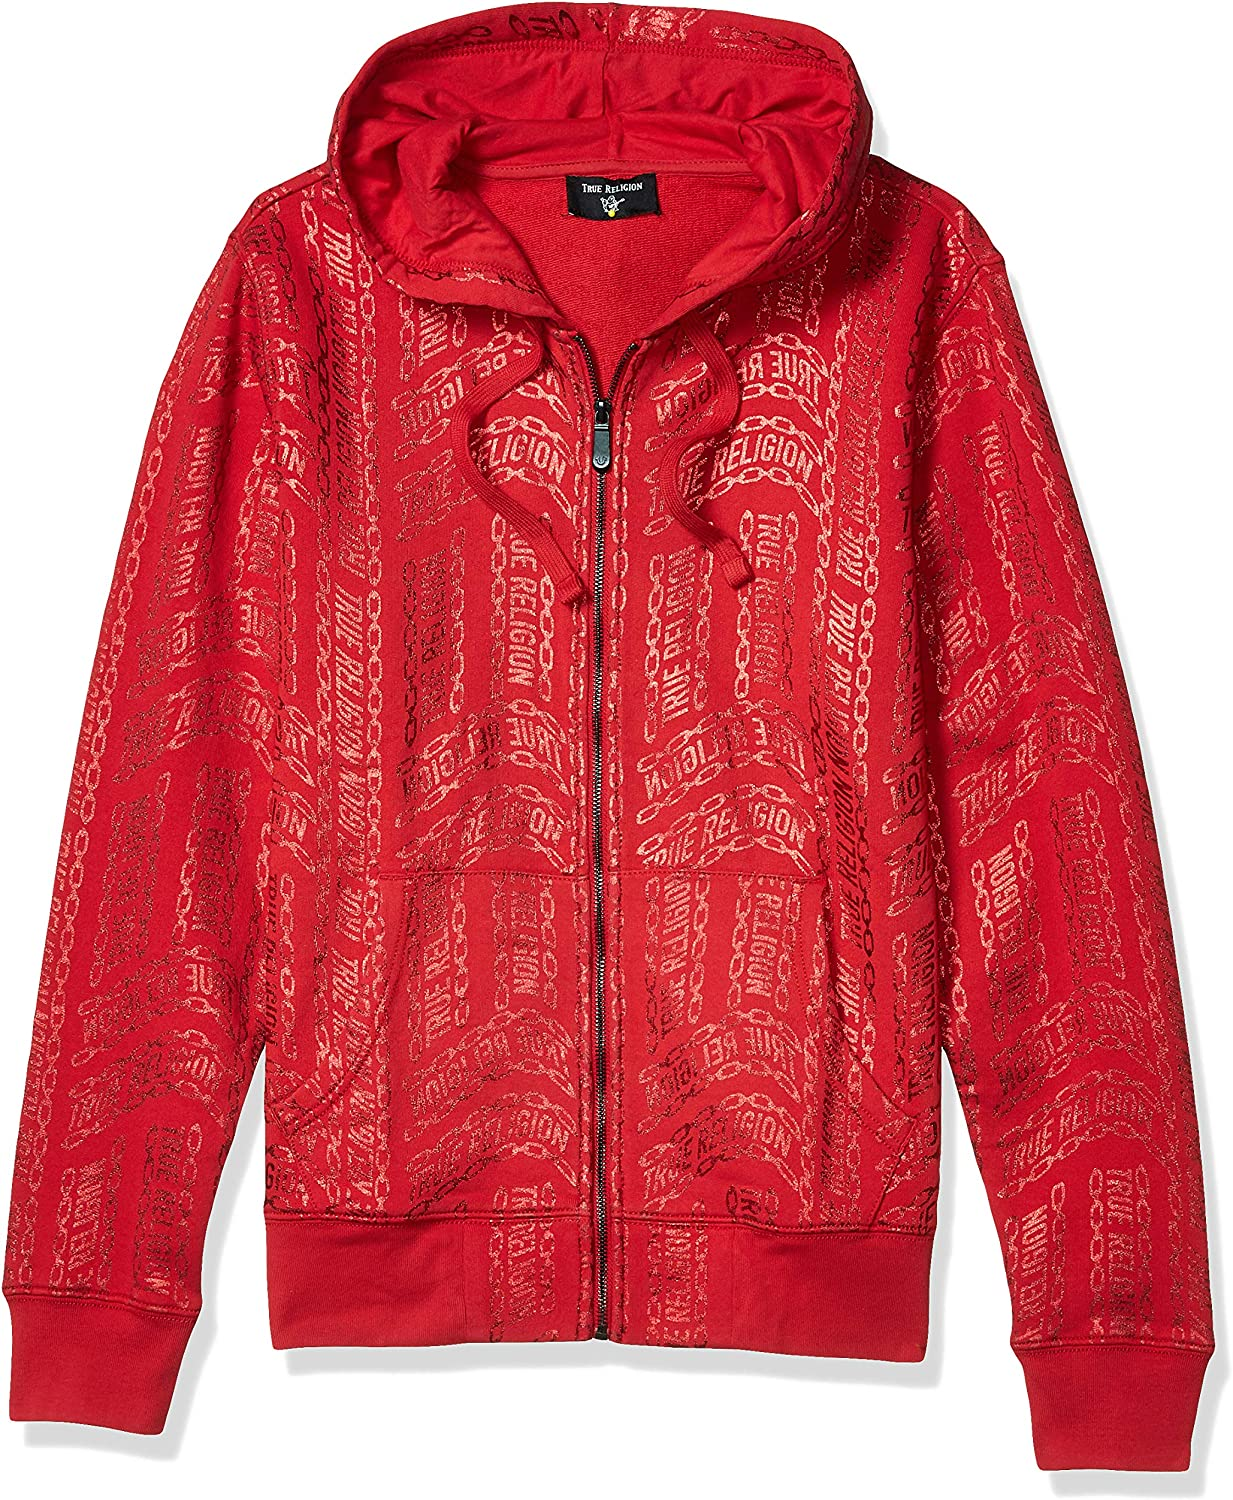 True Religion Men's All Over Graphic Zip-Up Hoodie